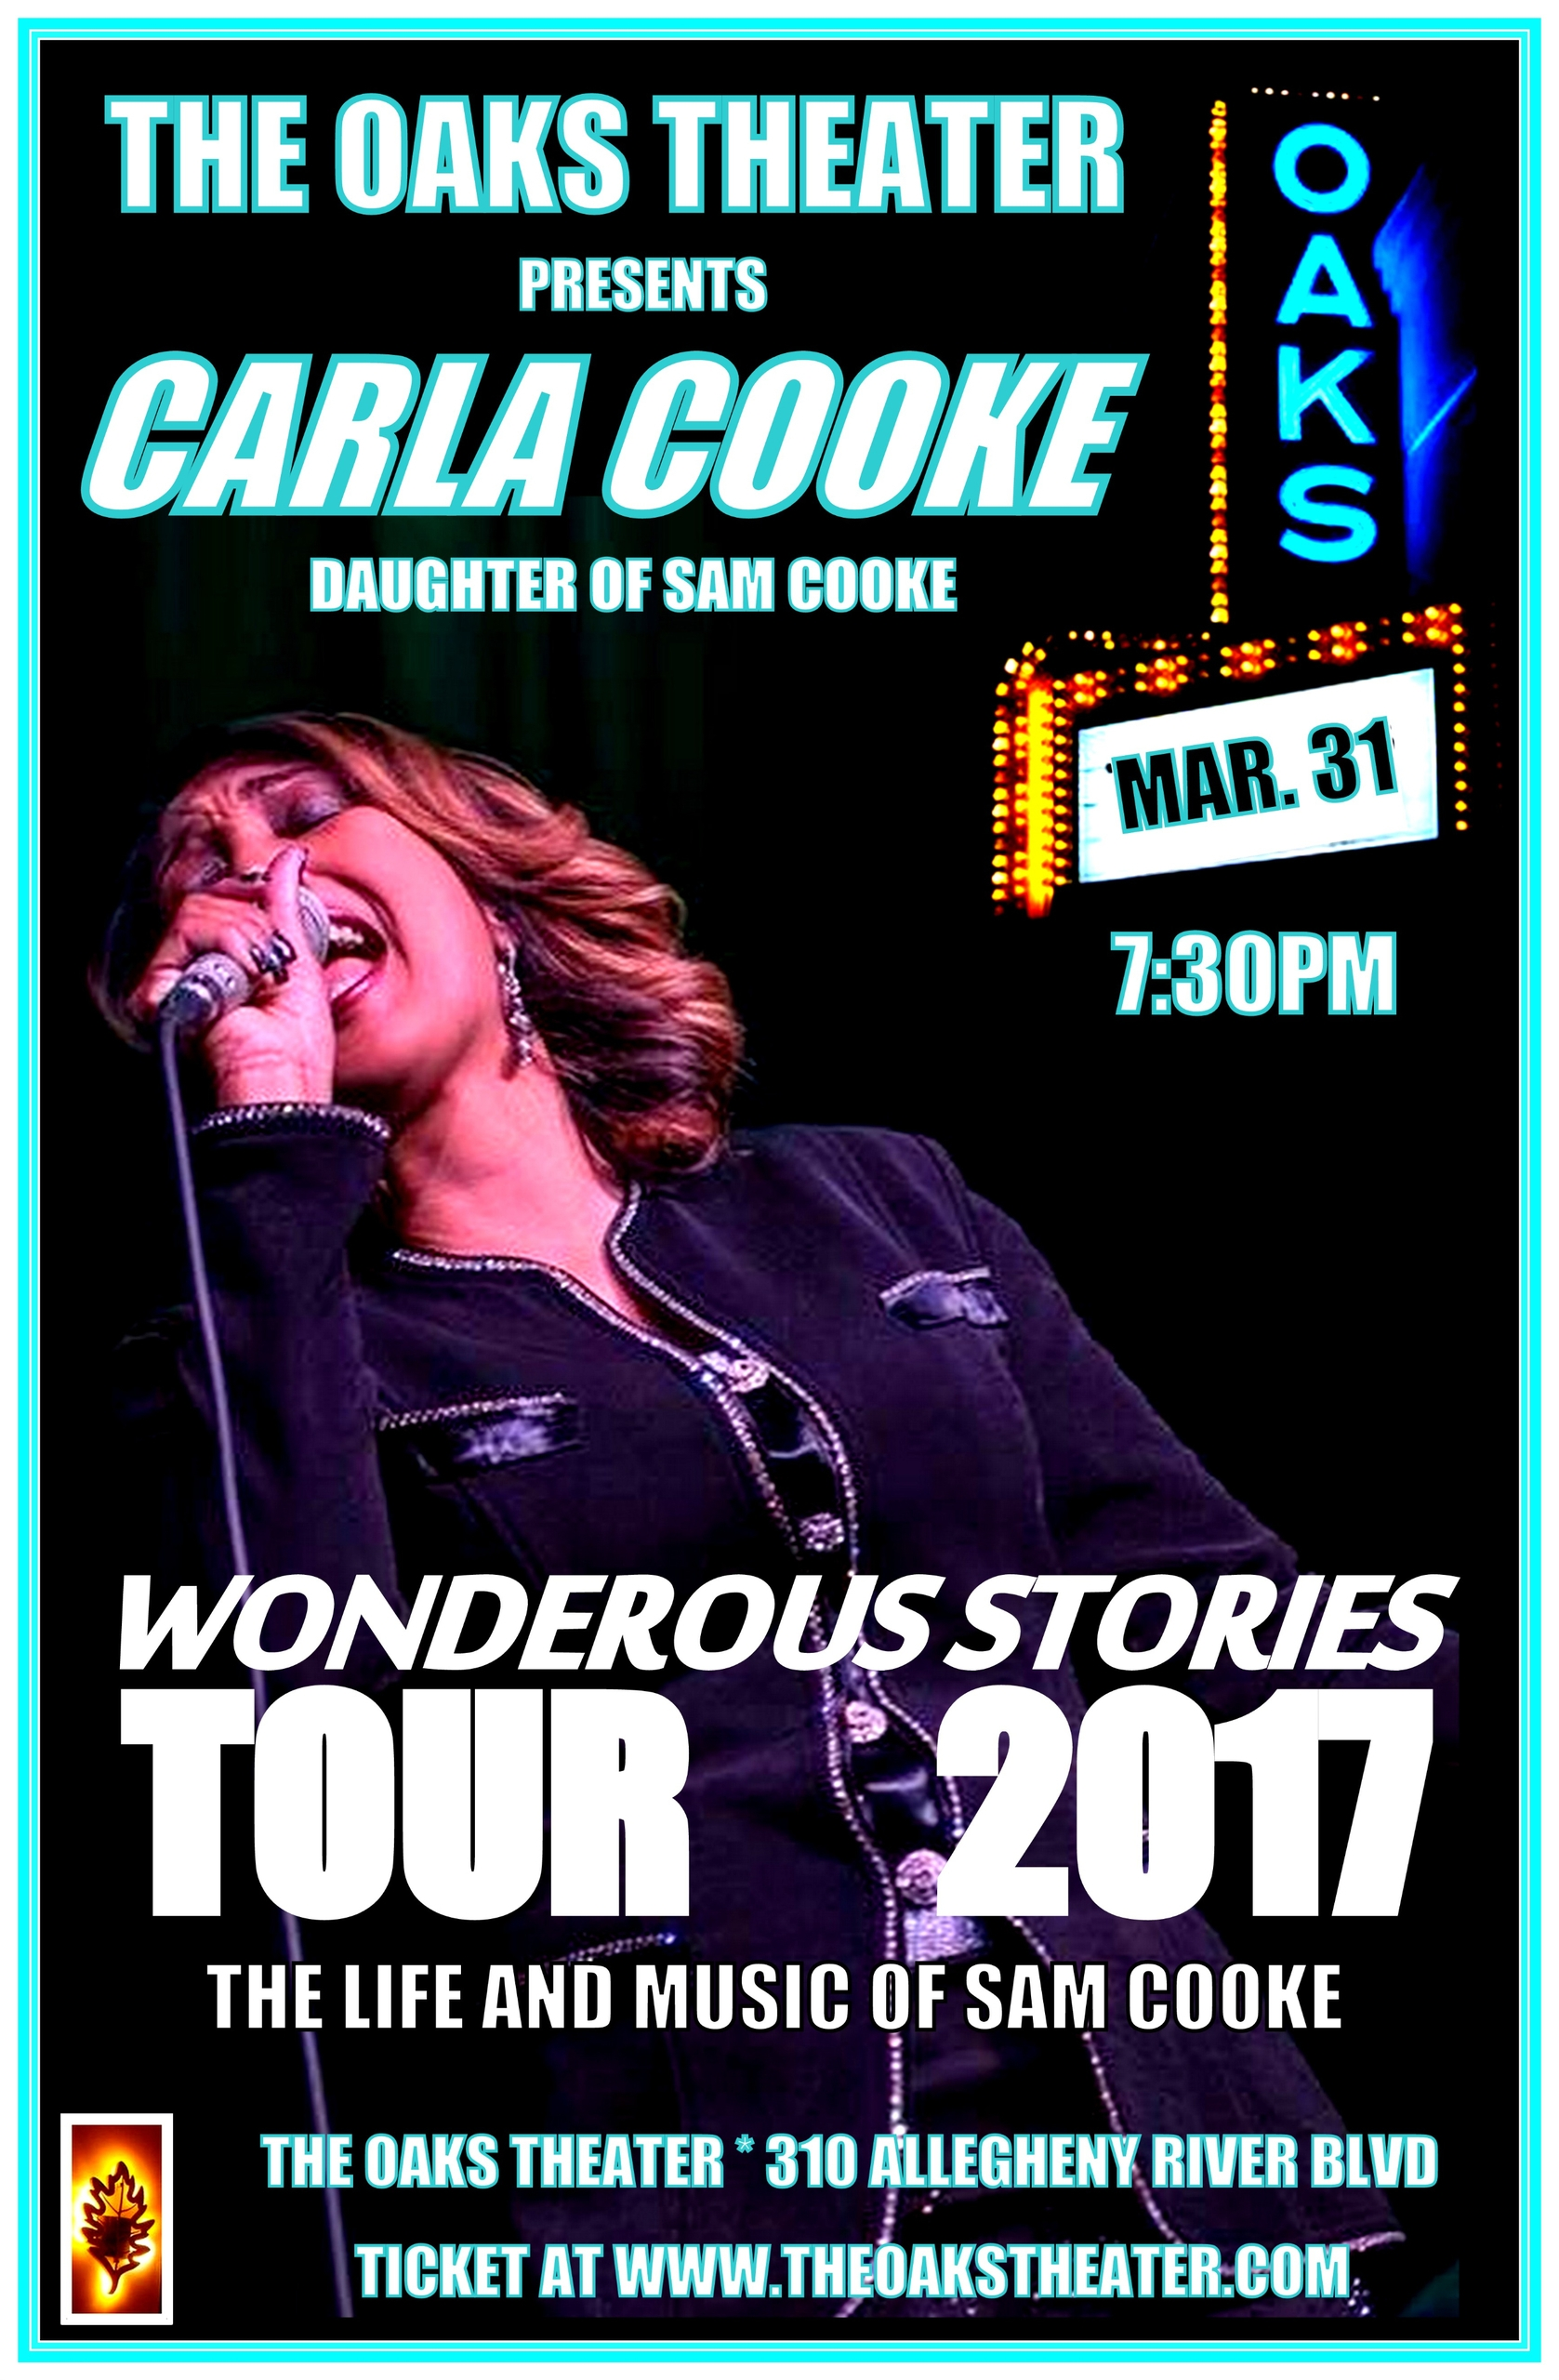 Tickets Carla Cooke March 31st  - soulsouthentertainment | ello